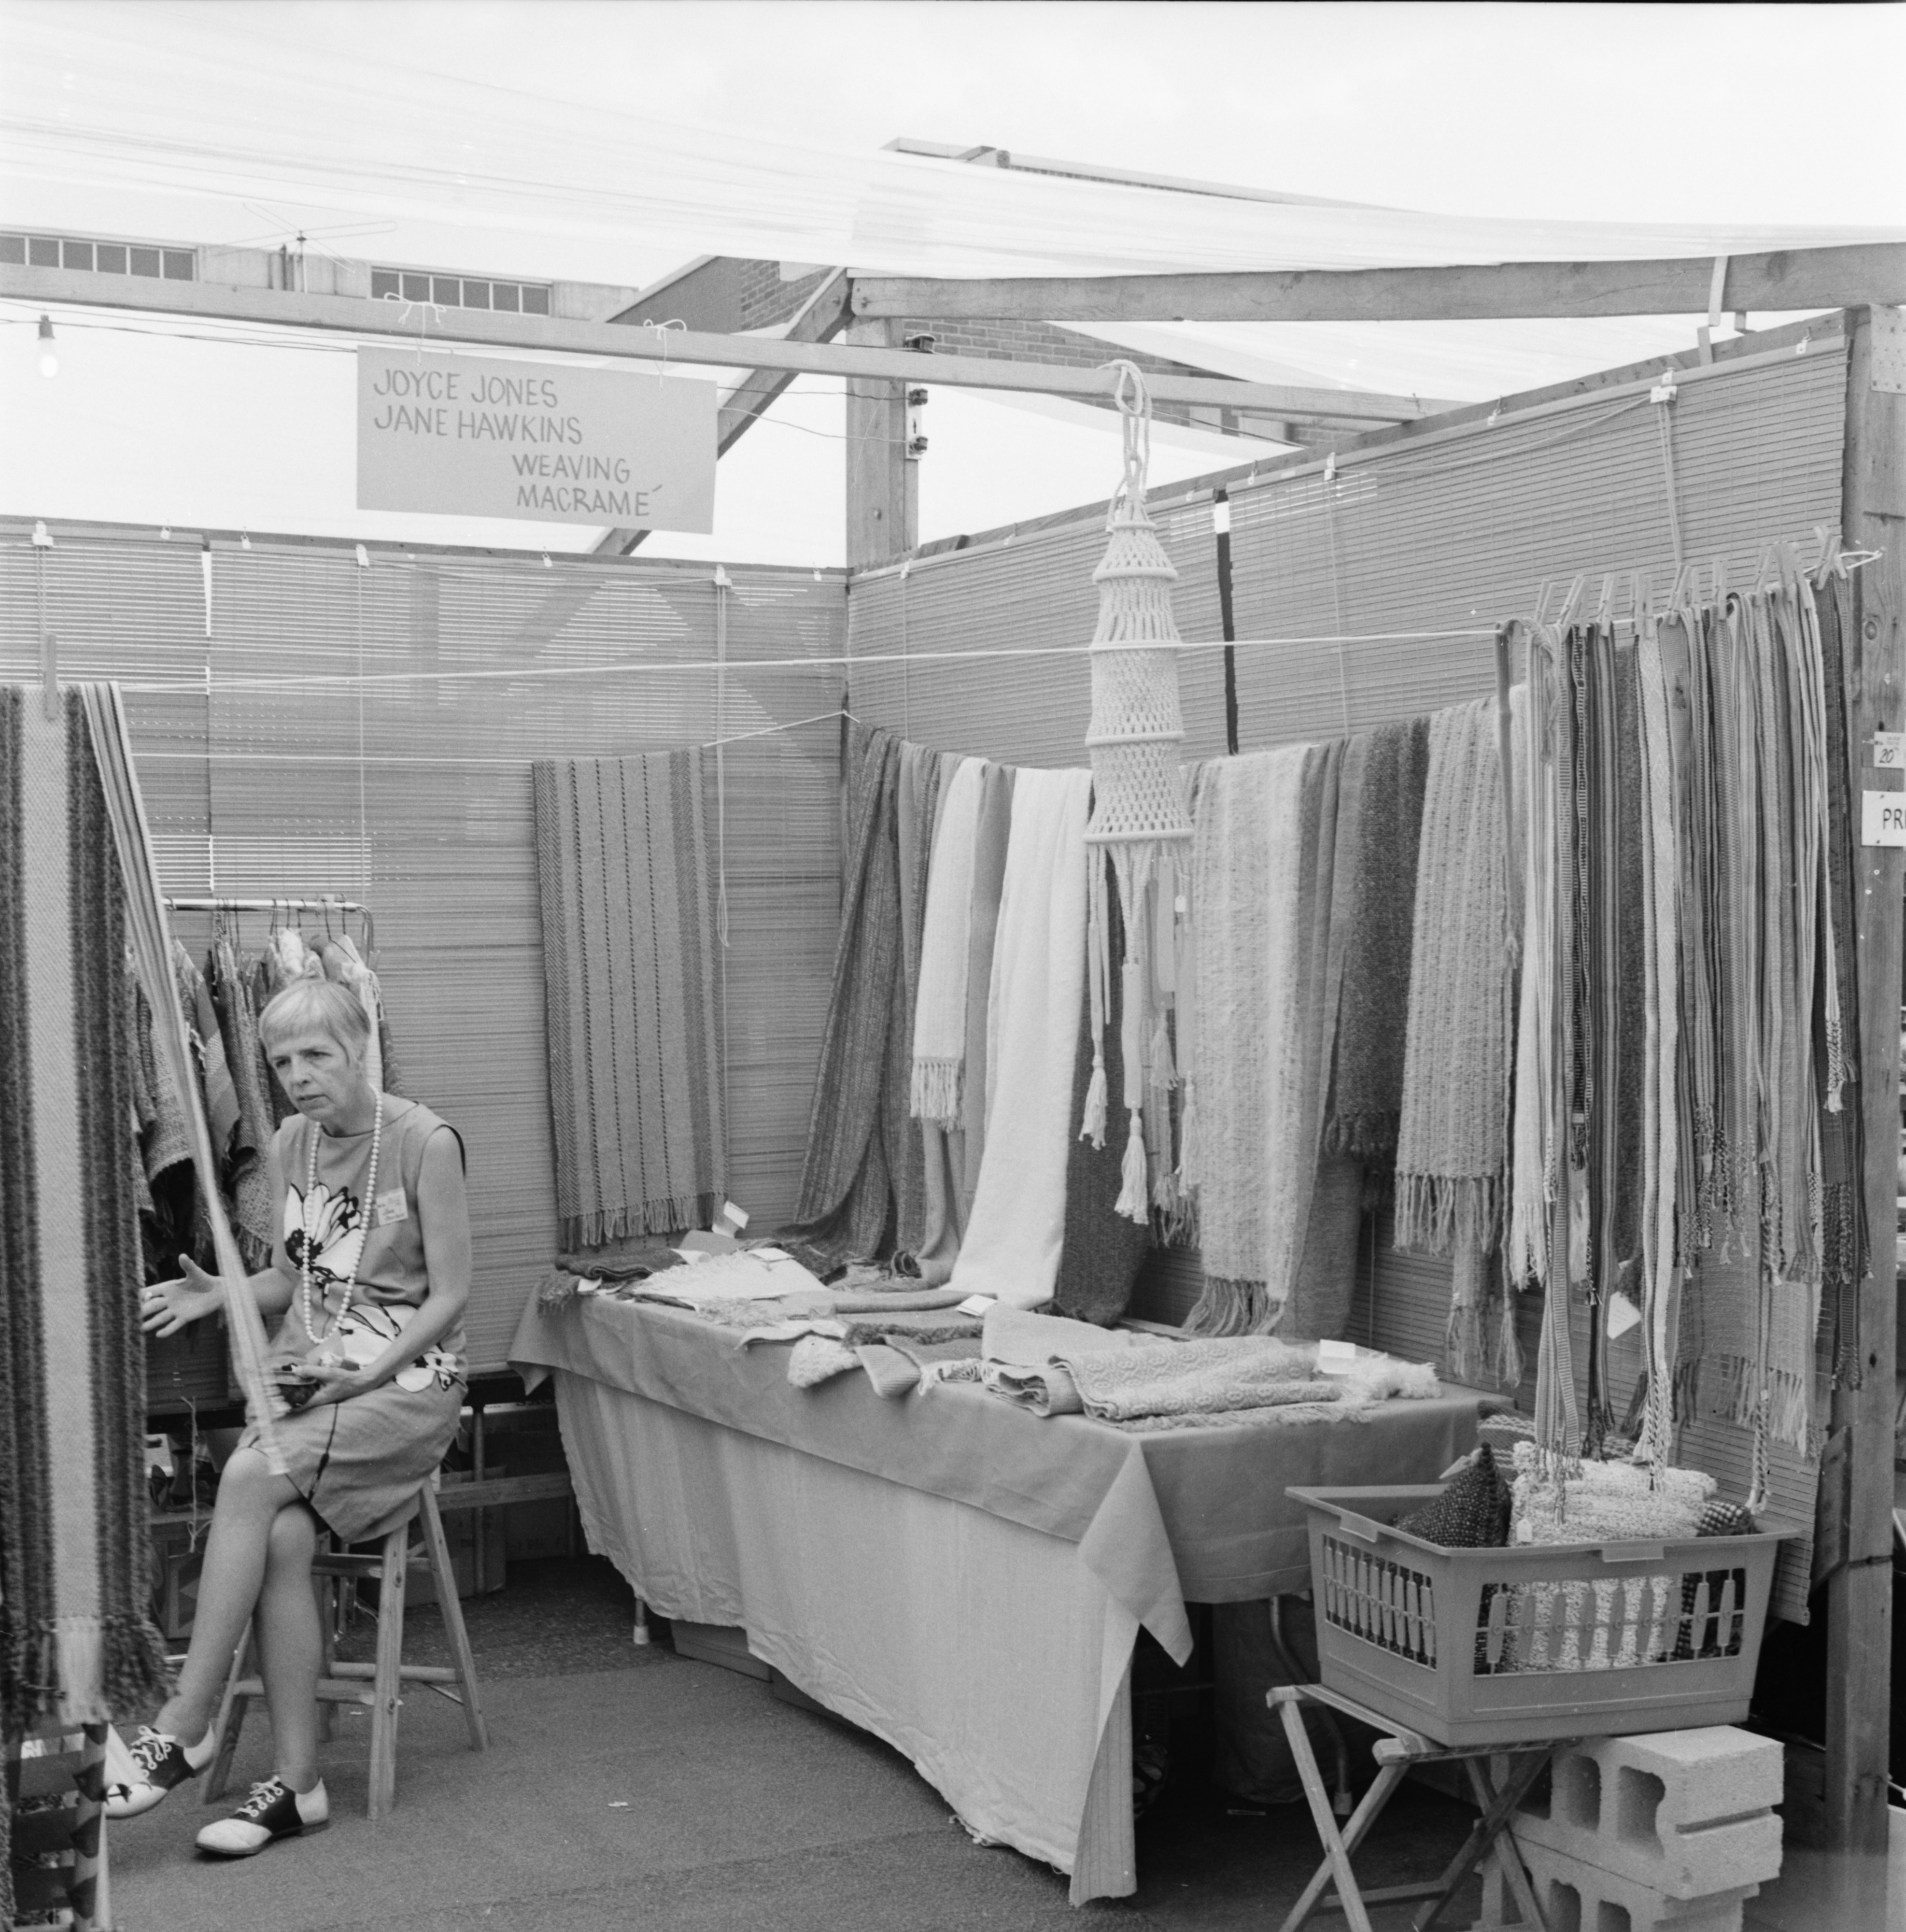 Booth of Jane Hawkins at the Ann Arbor Street Art Fair, July 1971 image